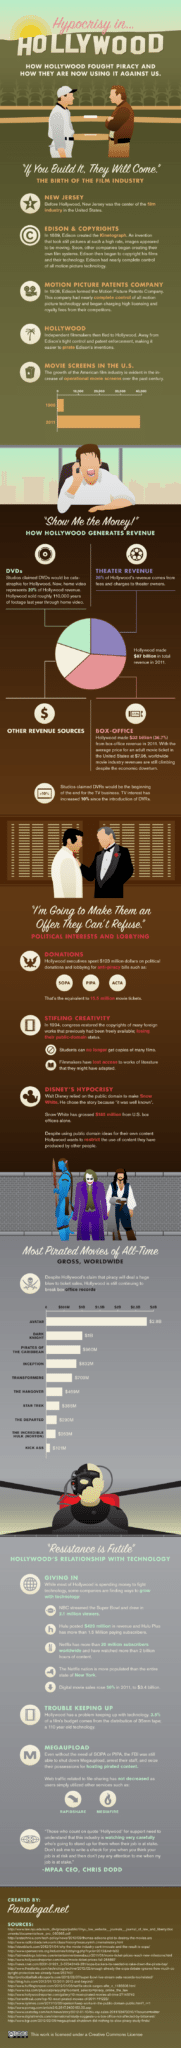 hypocrisy hollywood1 SOPA, PIPA, ACTA   Piracy and the Movie Business [infographic]